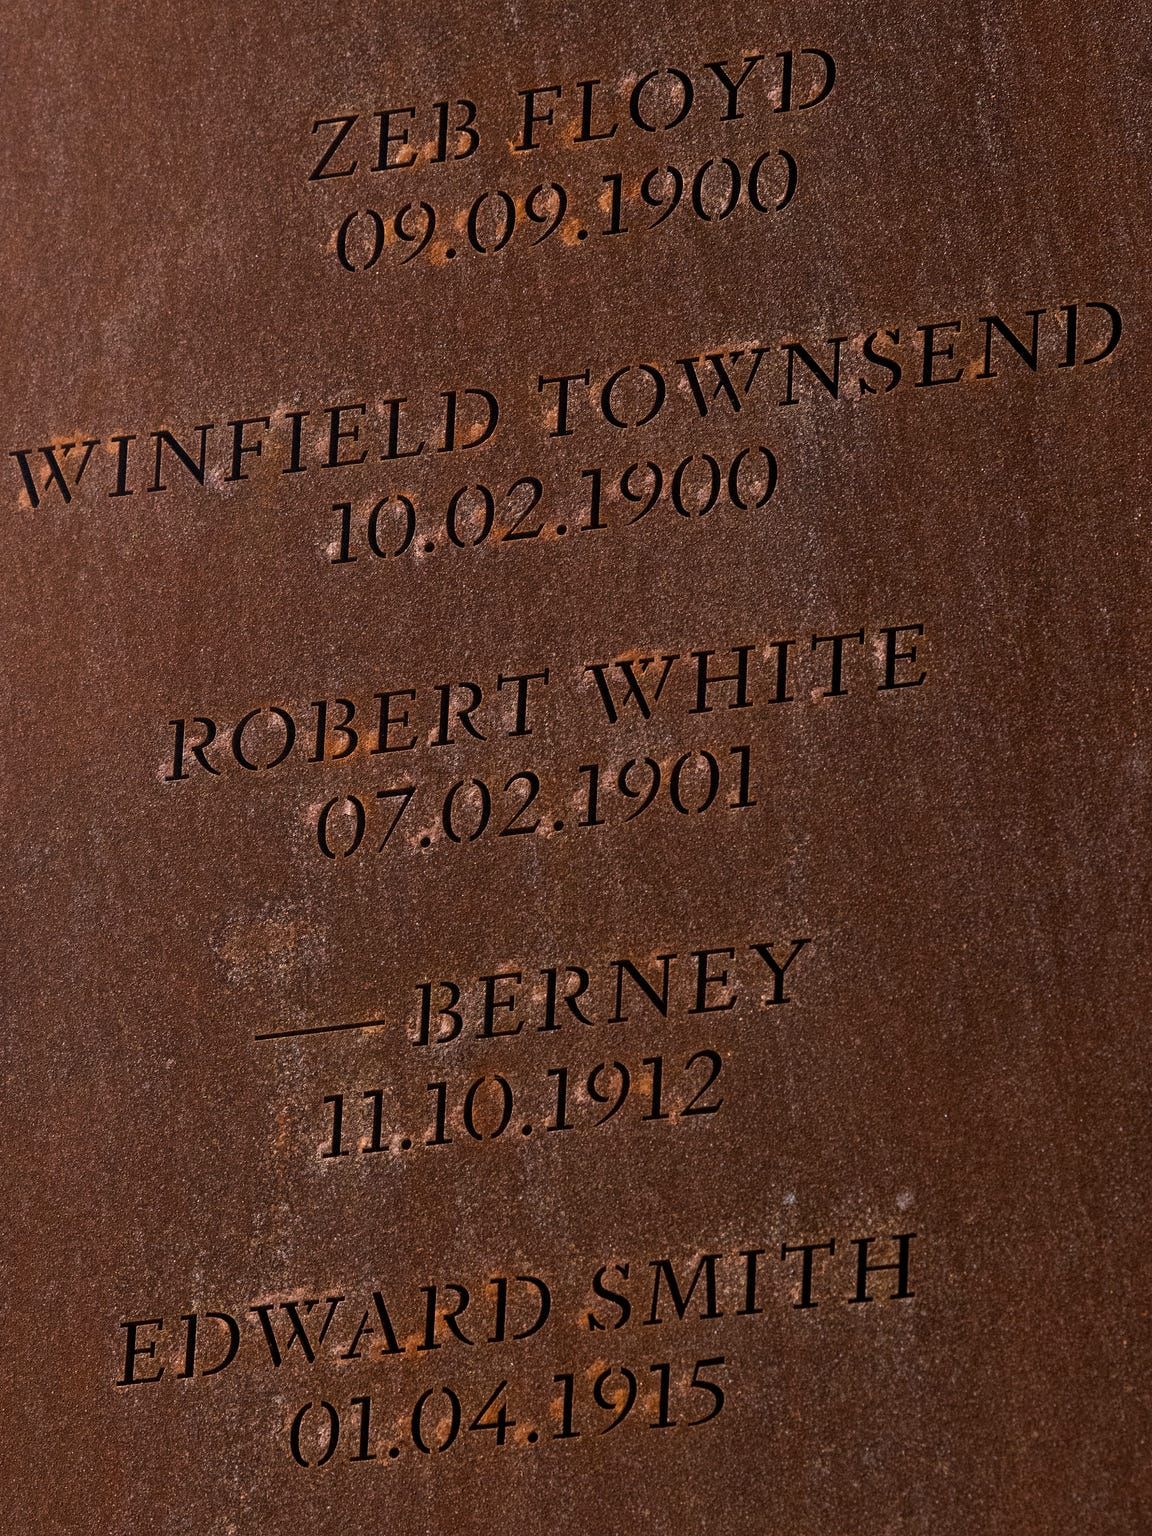 "One of the pillars at EJI's lynching memorial in Montgomery shows the name of Robert White. The 1900 Census listed Robert White as Robin. Most witnesses at the trials referred to him by that name, as did accounts of the murder after the sentencing. But the coverage immediately following the lynching called him Robert, as did a handful of witnesses. His brother Abe, who would play a major role in the events before and after the lynching, used both ""Robin"" and ""Robert"" in a letter dictated in 1902, suggesting, perhaps, that Robin was a nickname."